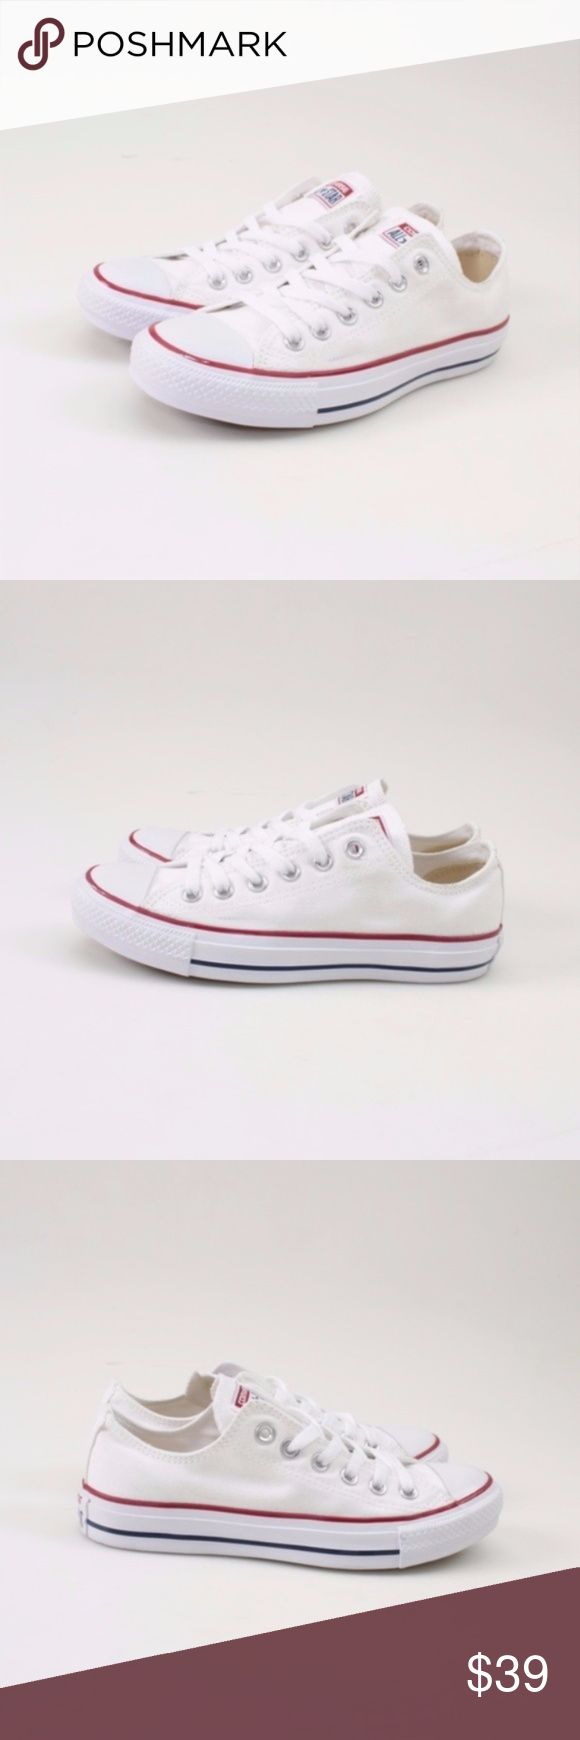 Converse All Star Low Tops Optic White // Size 6  Classic low top Chucks for all seasons!  Durable canvas upper.  Lace-up front with metal eyelets.  Canvas lining and a cushioned footbed provides hours of comfort.  Women's size 7.5 = men's size 5.5   These shoes were a store return, so they have been tried on. Otherwise, not worn out.  Photos show all details.   These come brand new in the original box, but the box does have damage.  #24WKSD // Converse // Chuck Taylors // Sneakers // All…